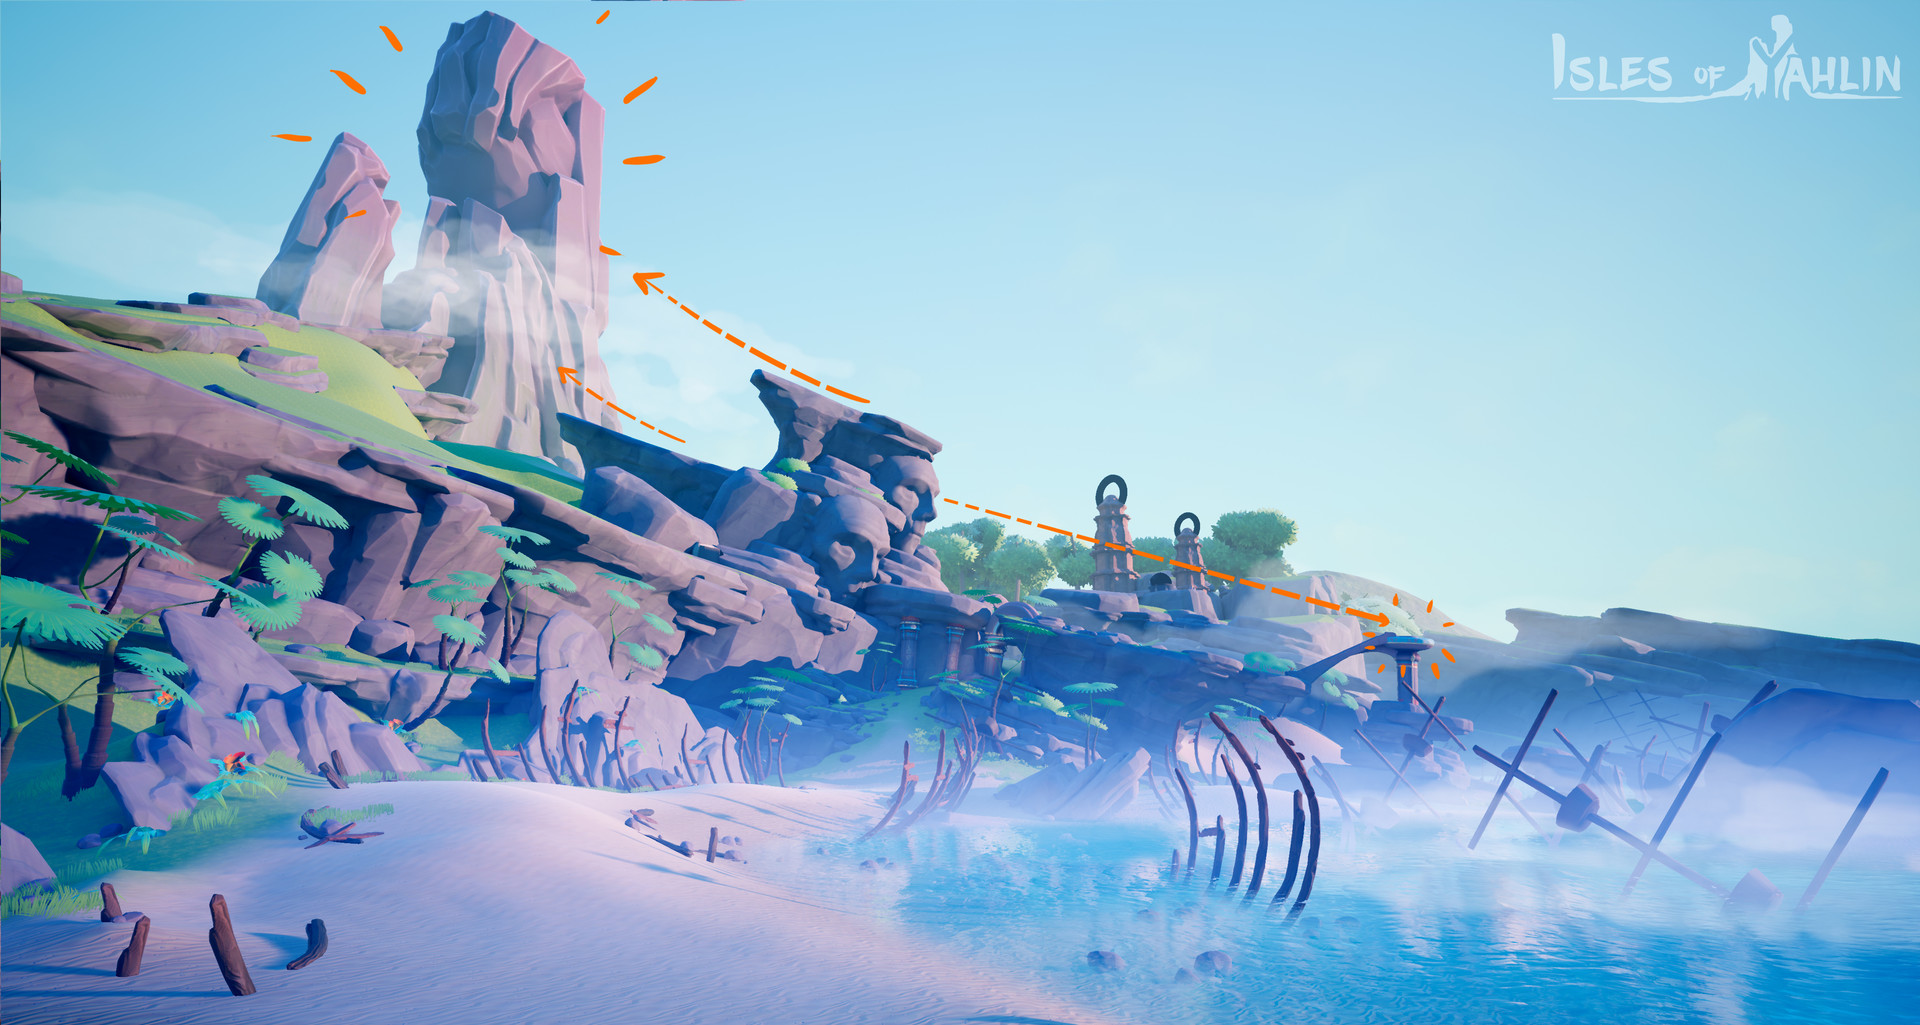 Orange: secondary visual cues. The mountain is the eventual main goal for the player to go to, and plays an important role in the story. The platform on the right is a vantage point. The player will need to visit this area to be able to open a gate later.